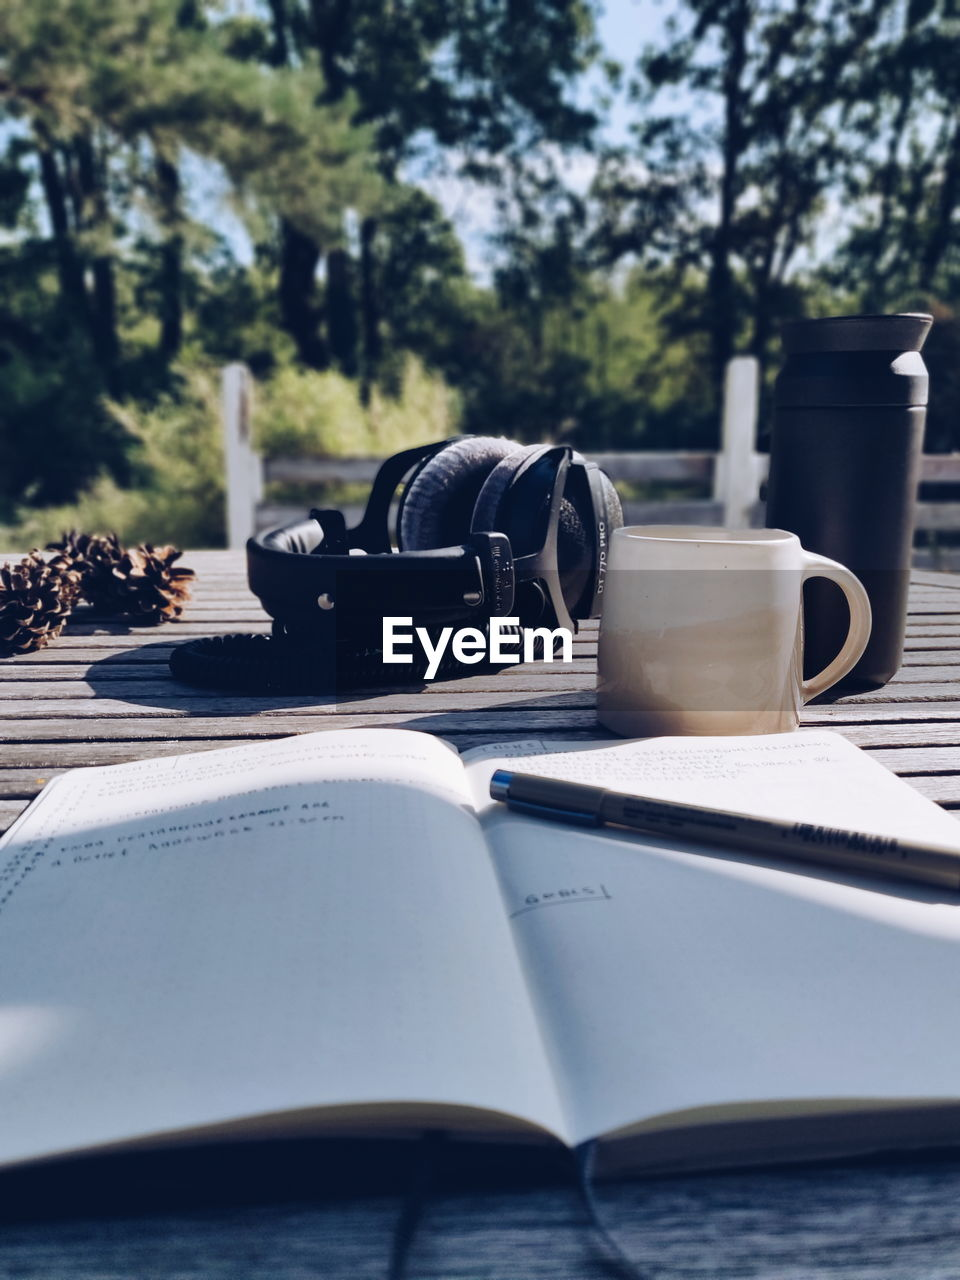 CLOSE-UP OF COFFEE CUP ON TABLE AGAINST TREES